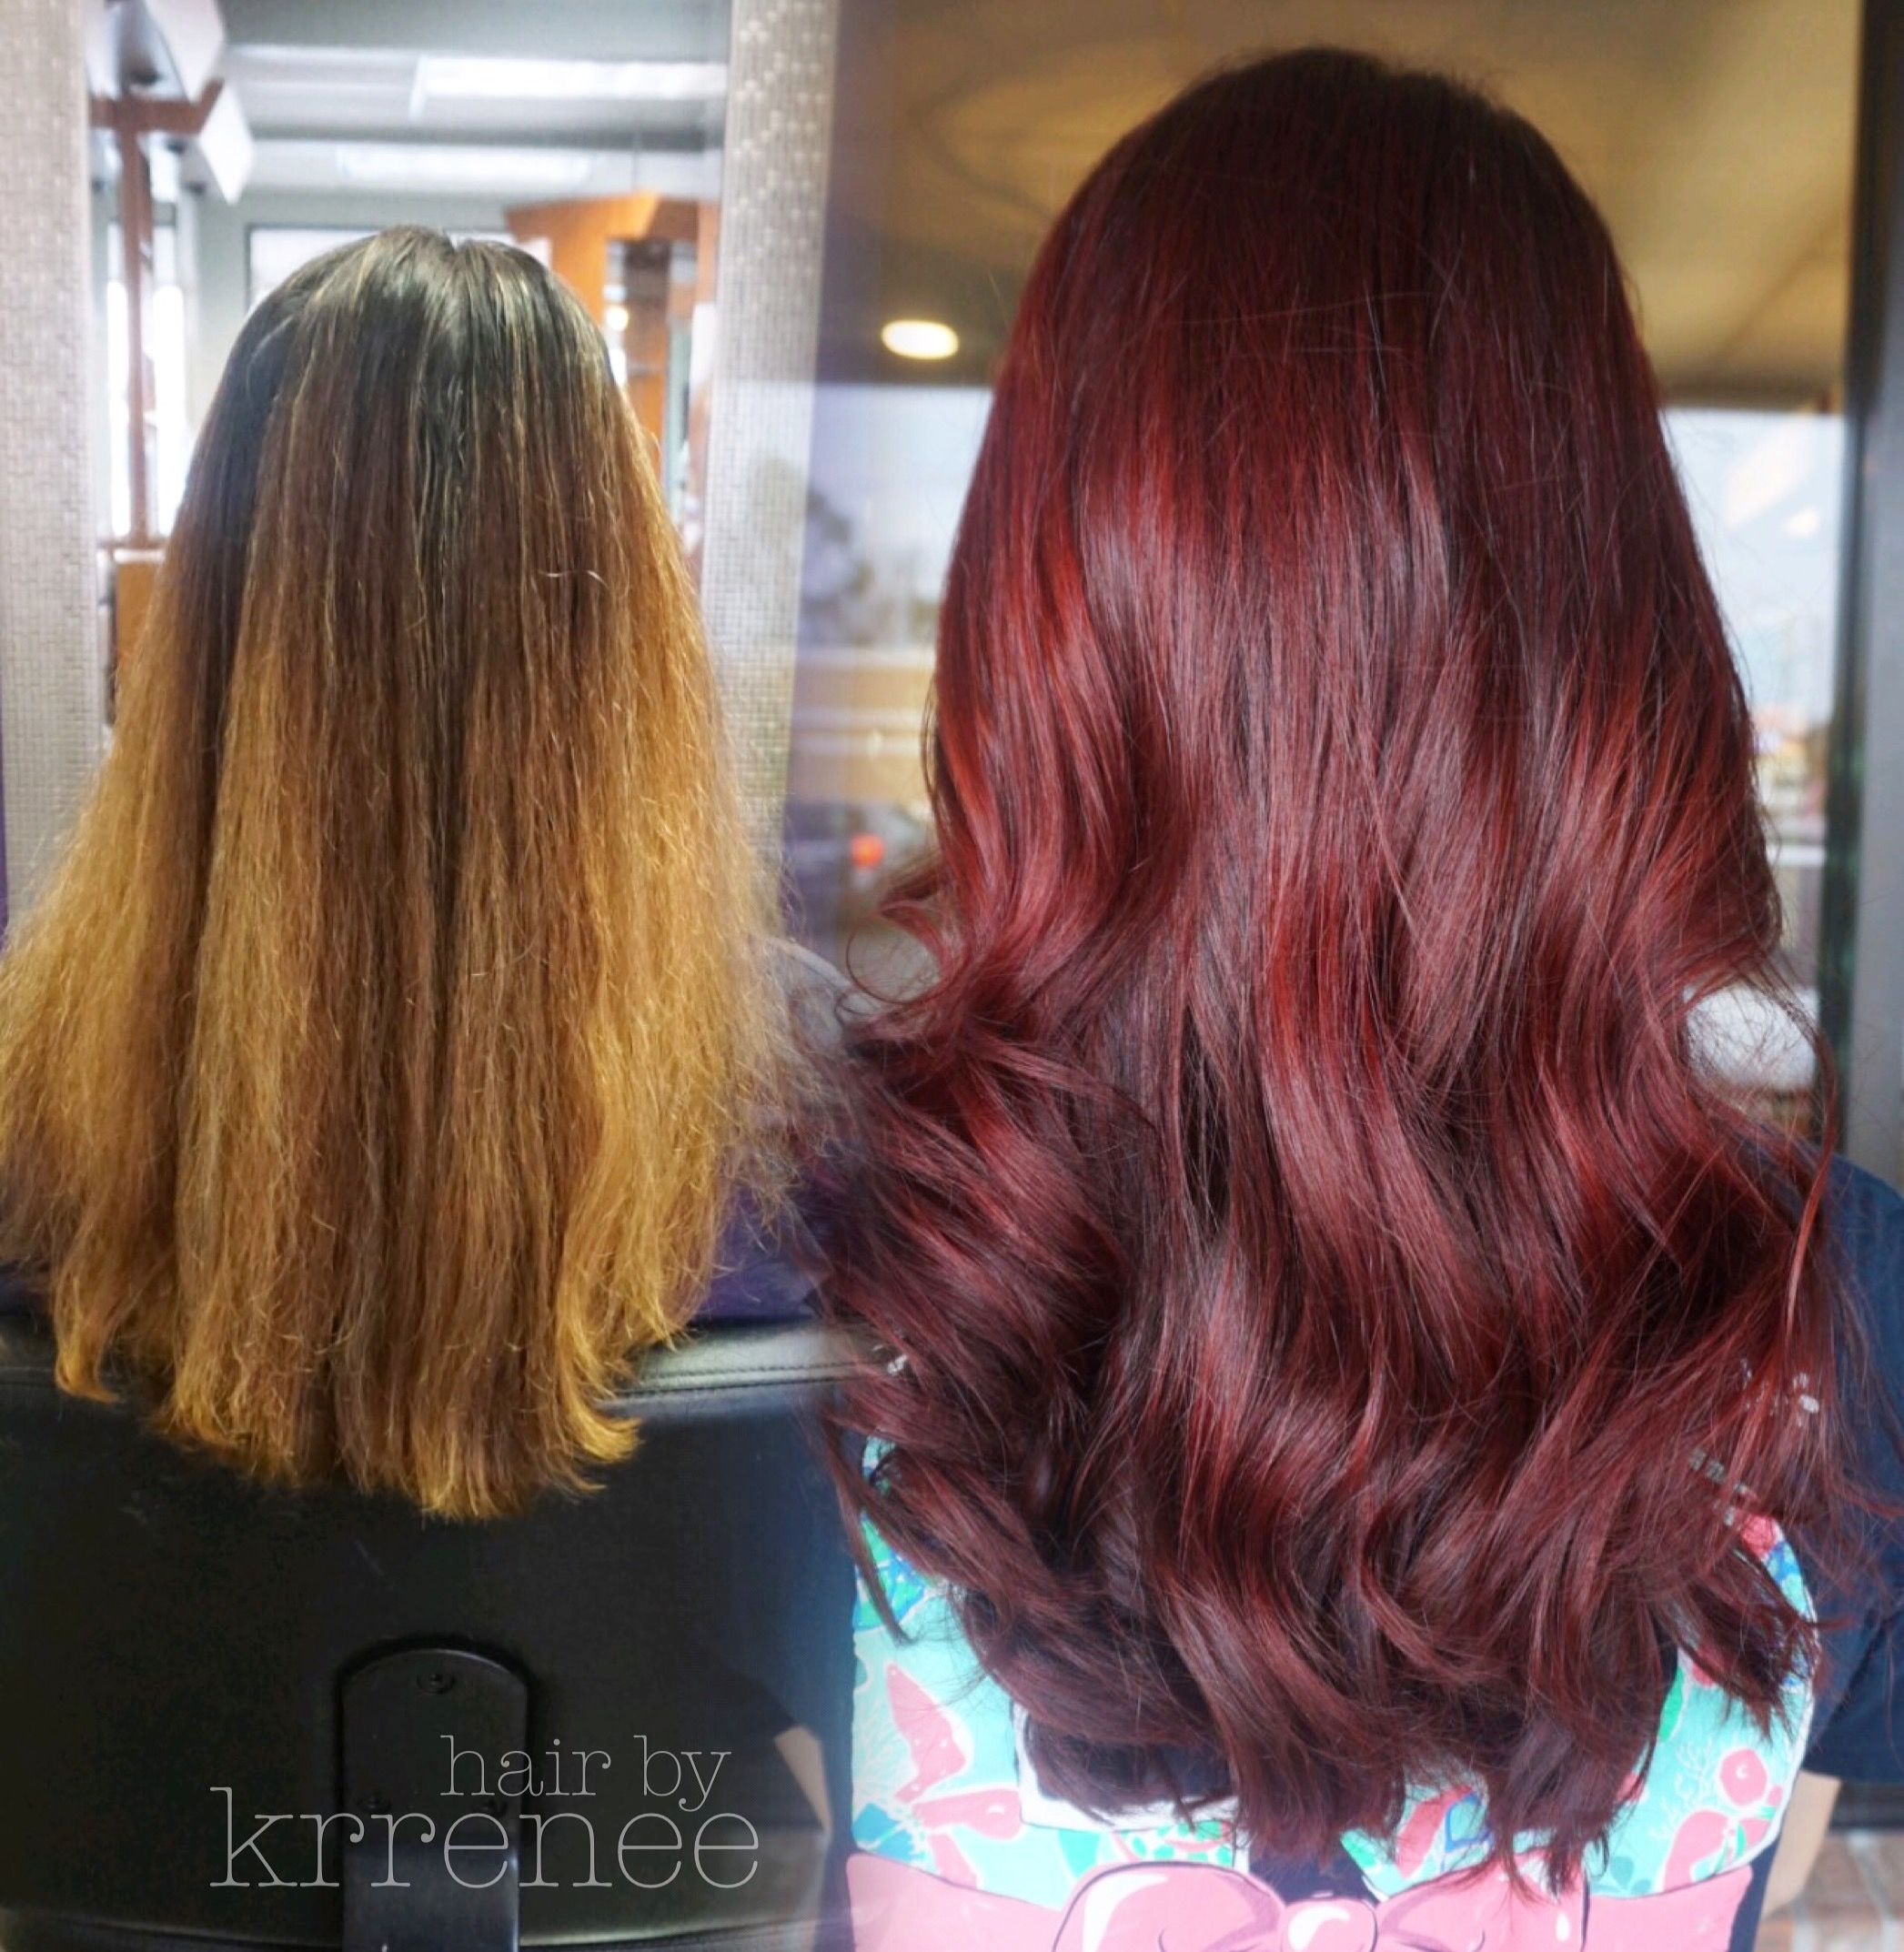 Before And After Blonde To Red Hair Transformation Deep Red Hair Hair Transformation Wine Red Hair